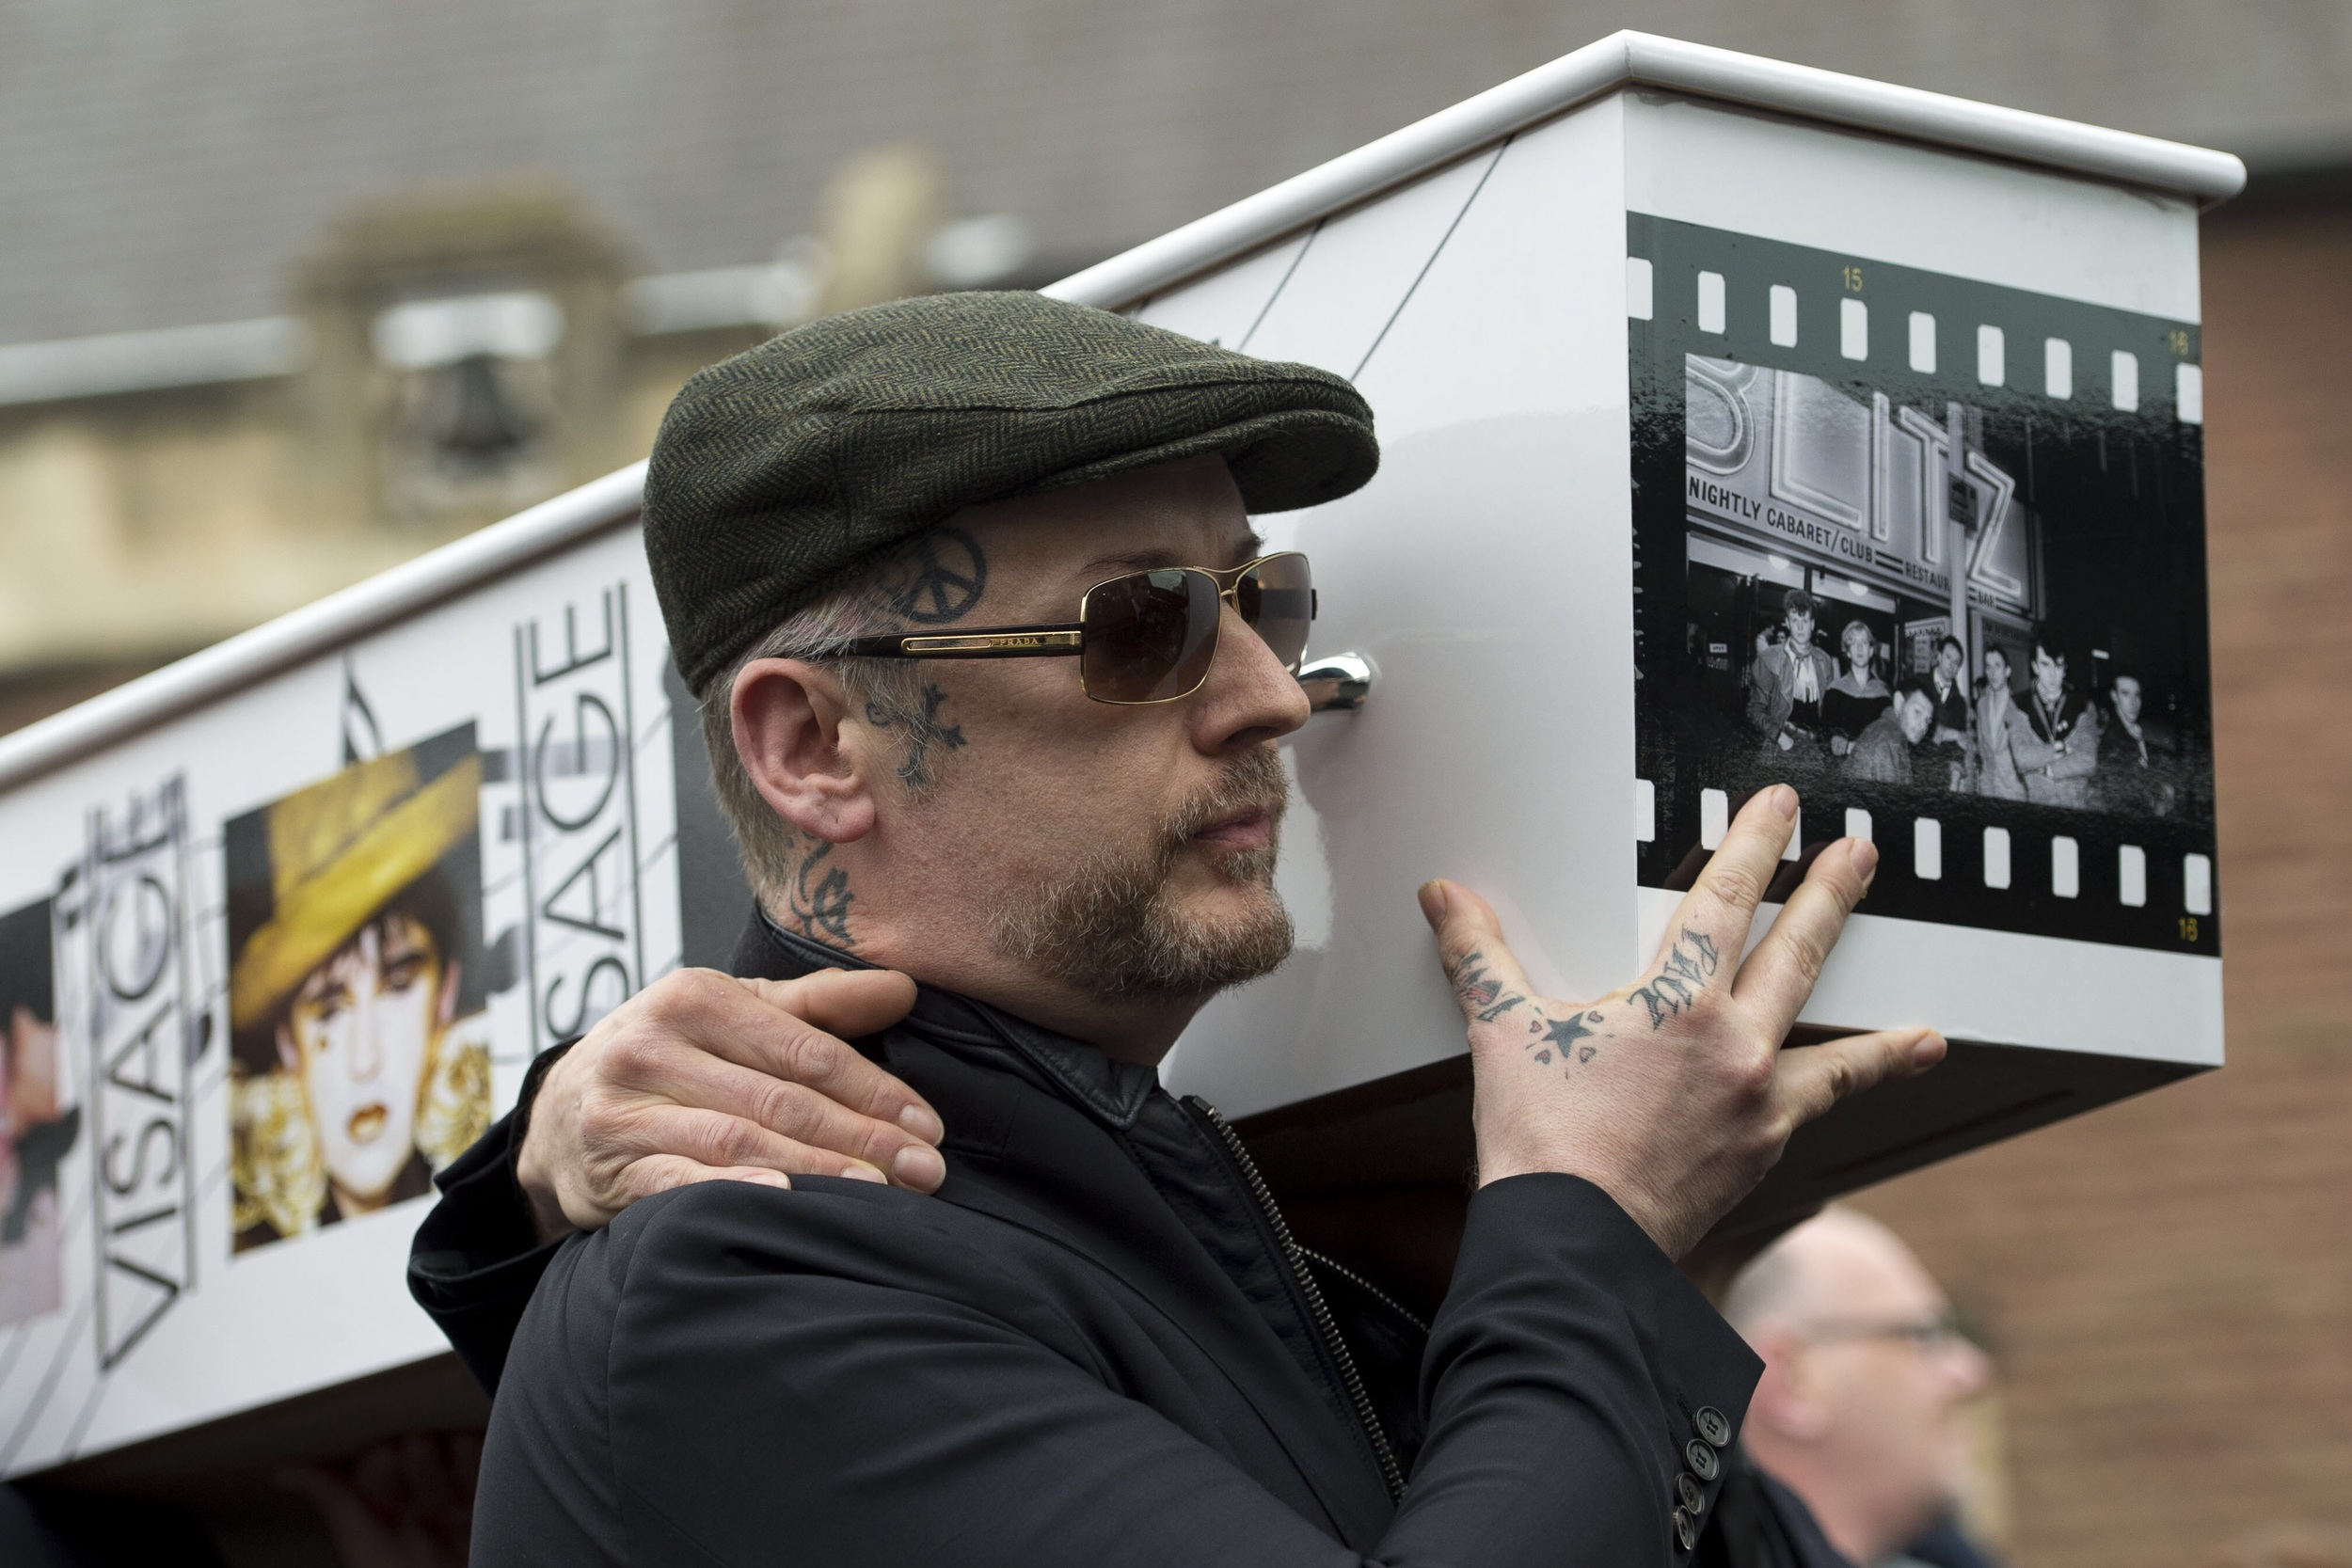 boy-george-carries-coffin-visage-star-steve-strange